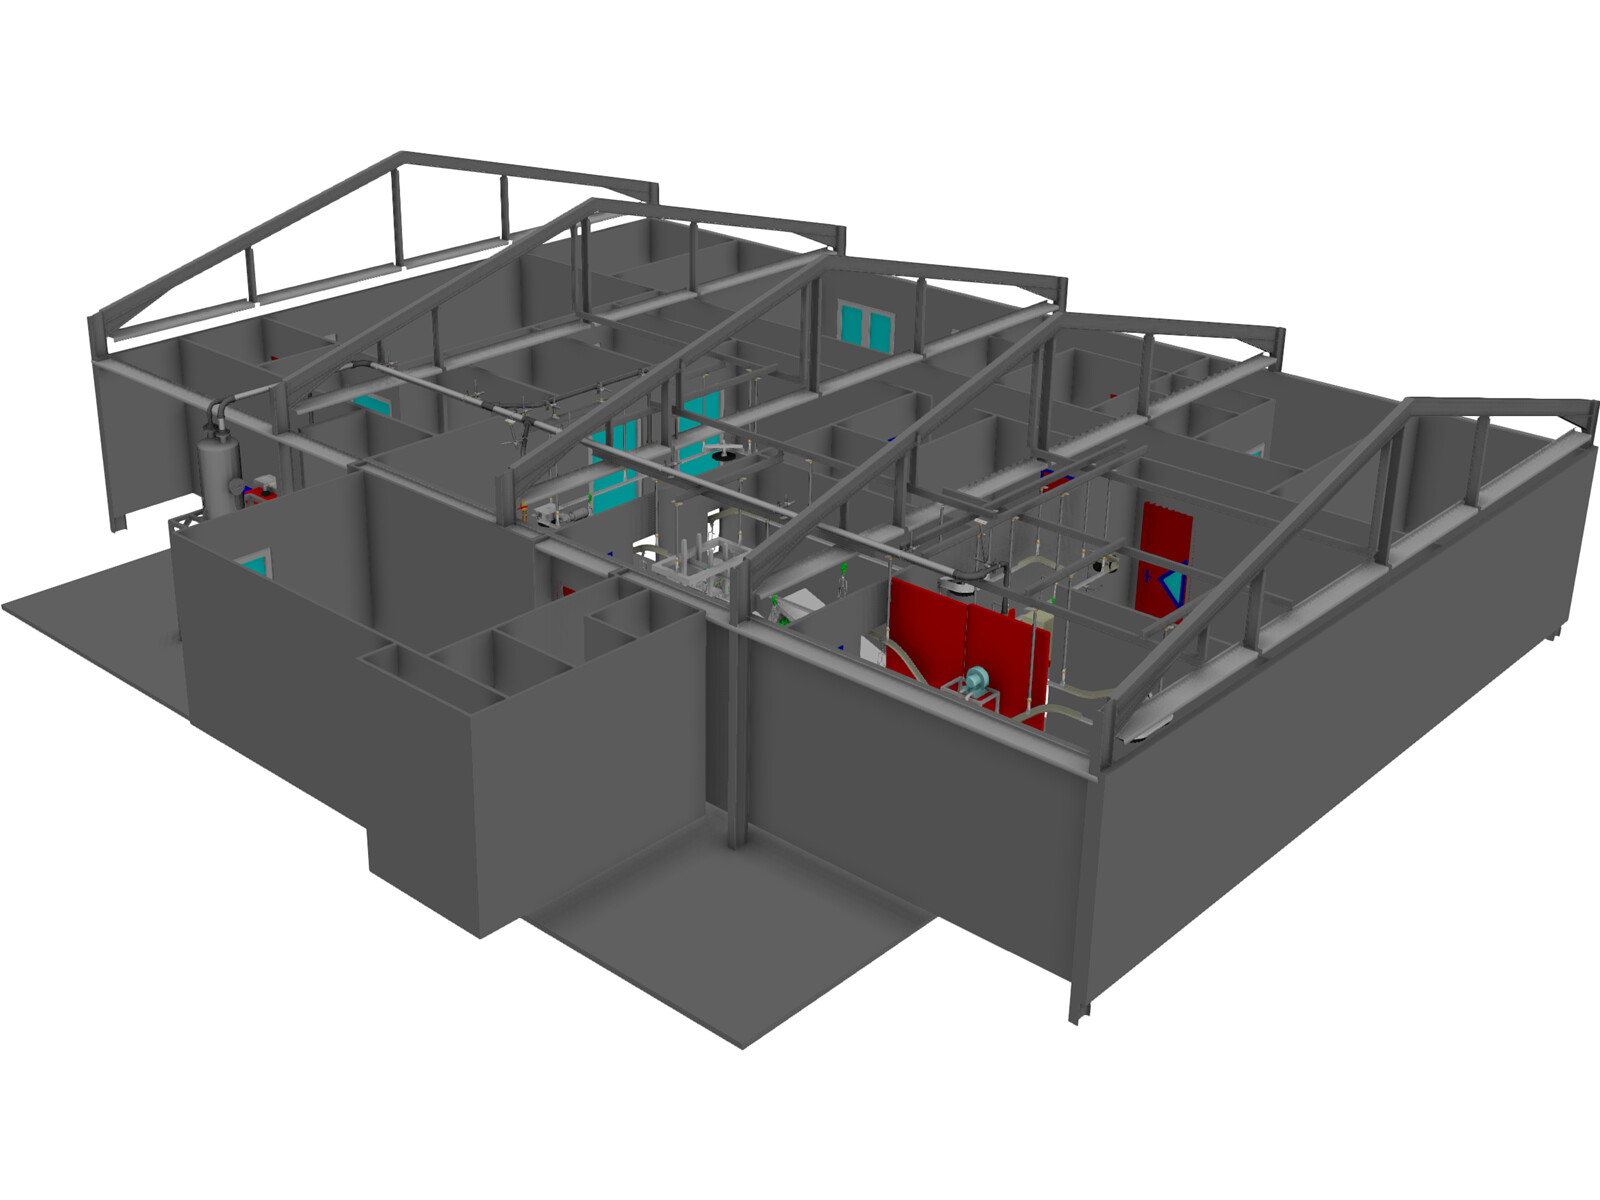 Slaughter house for chickens 3d model 3d cad browser slaughter house for chickens 3d model ccuart Gallery